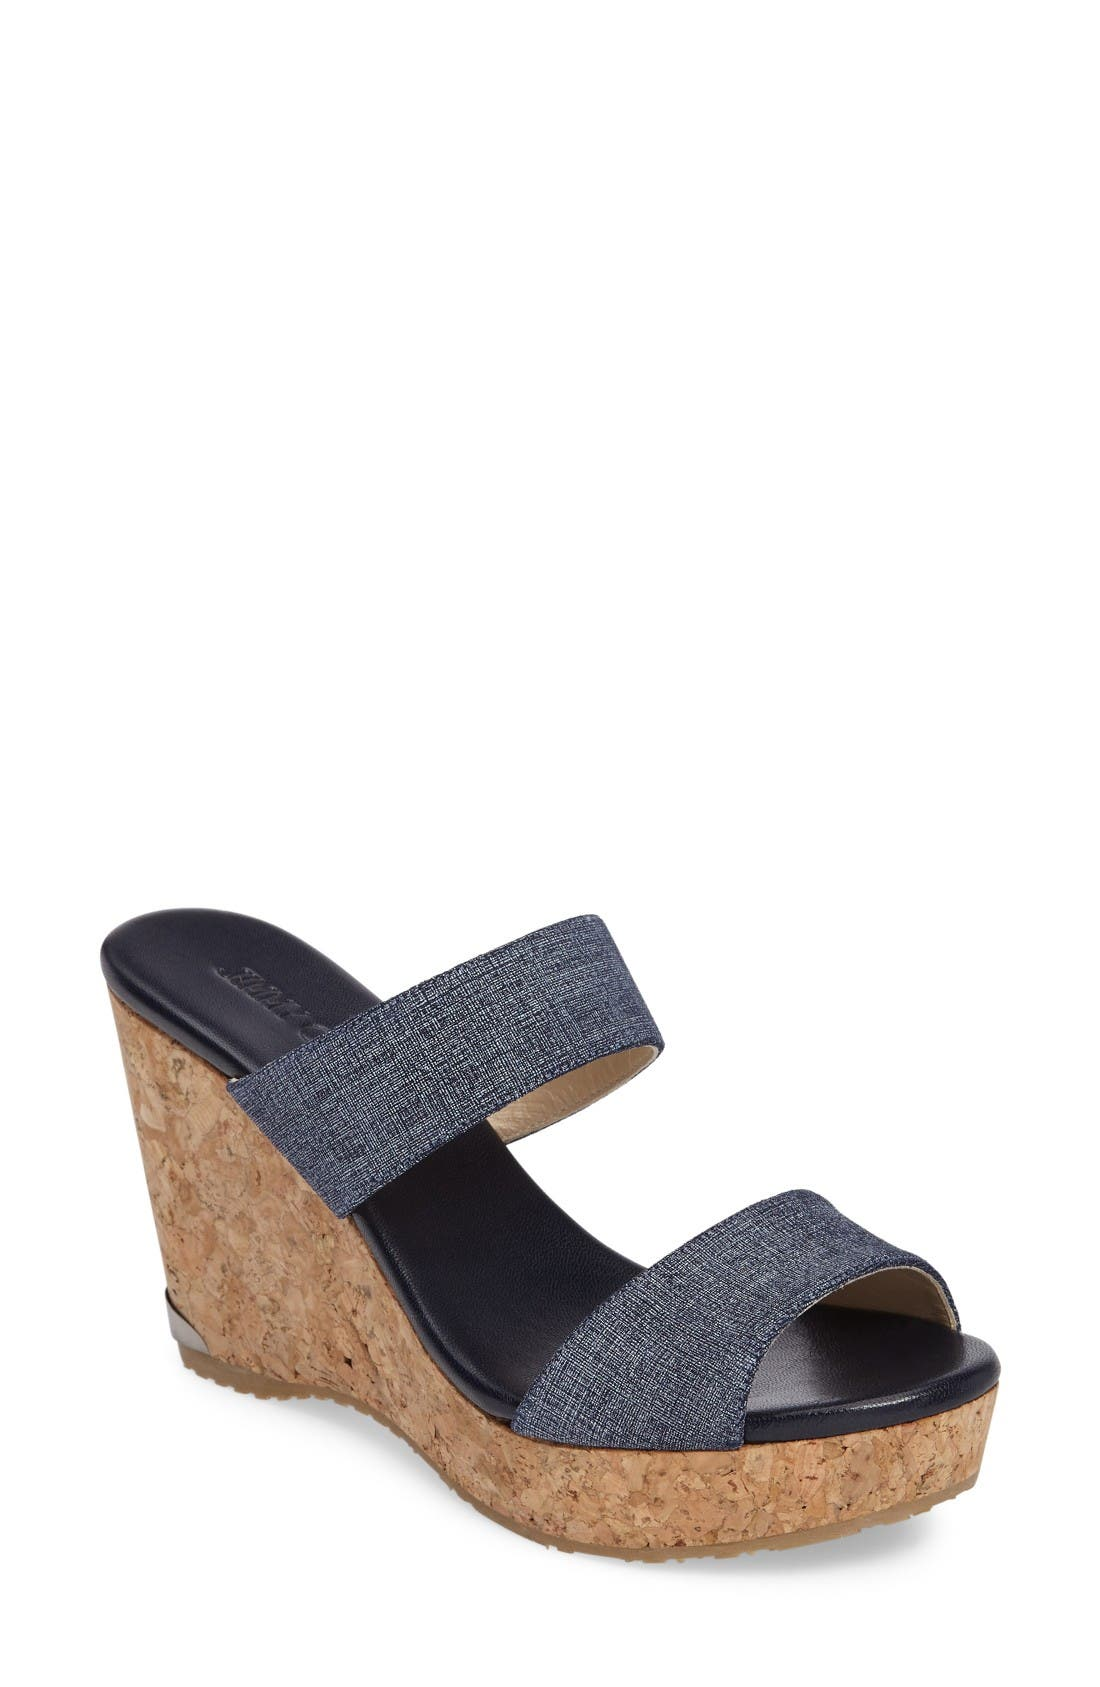 JIMMY CHOO Parker Wedge Sandal